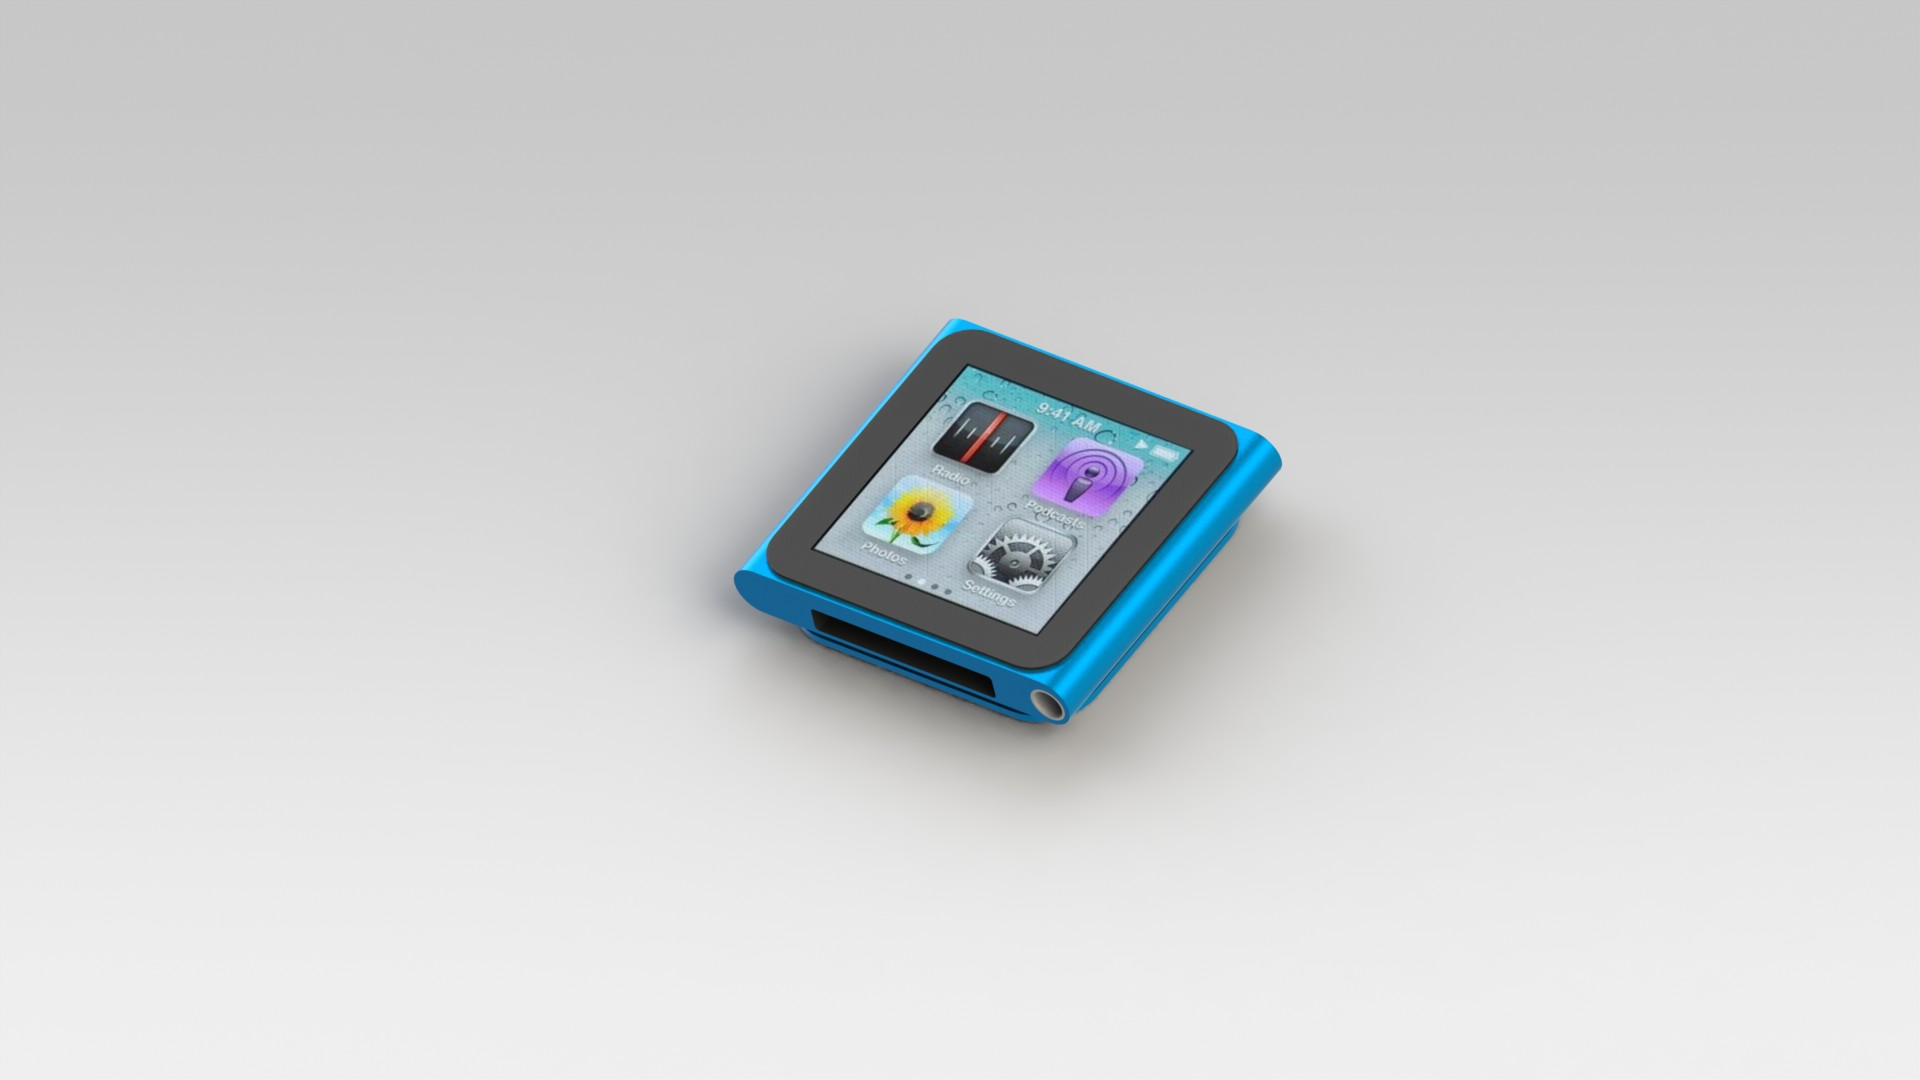 iPod nano 6th generation rendered in SolidWorks PhotoView 360